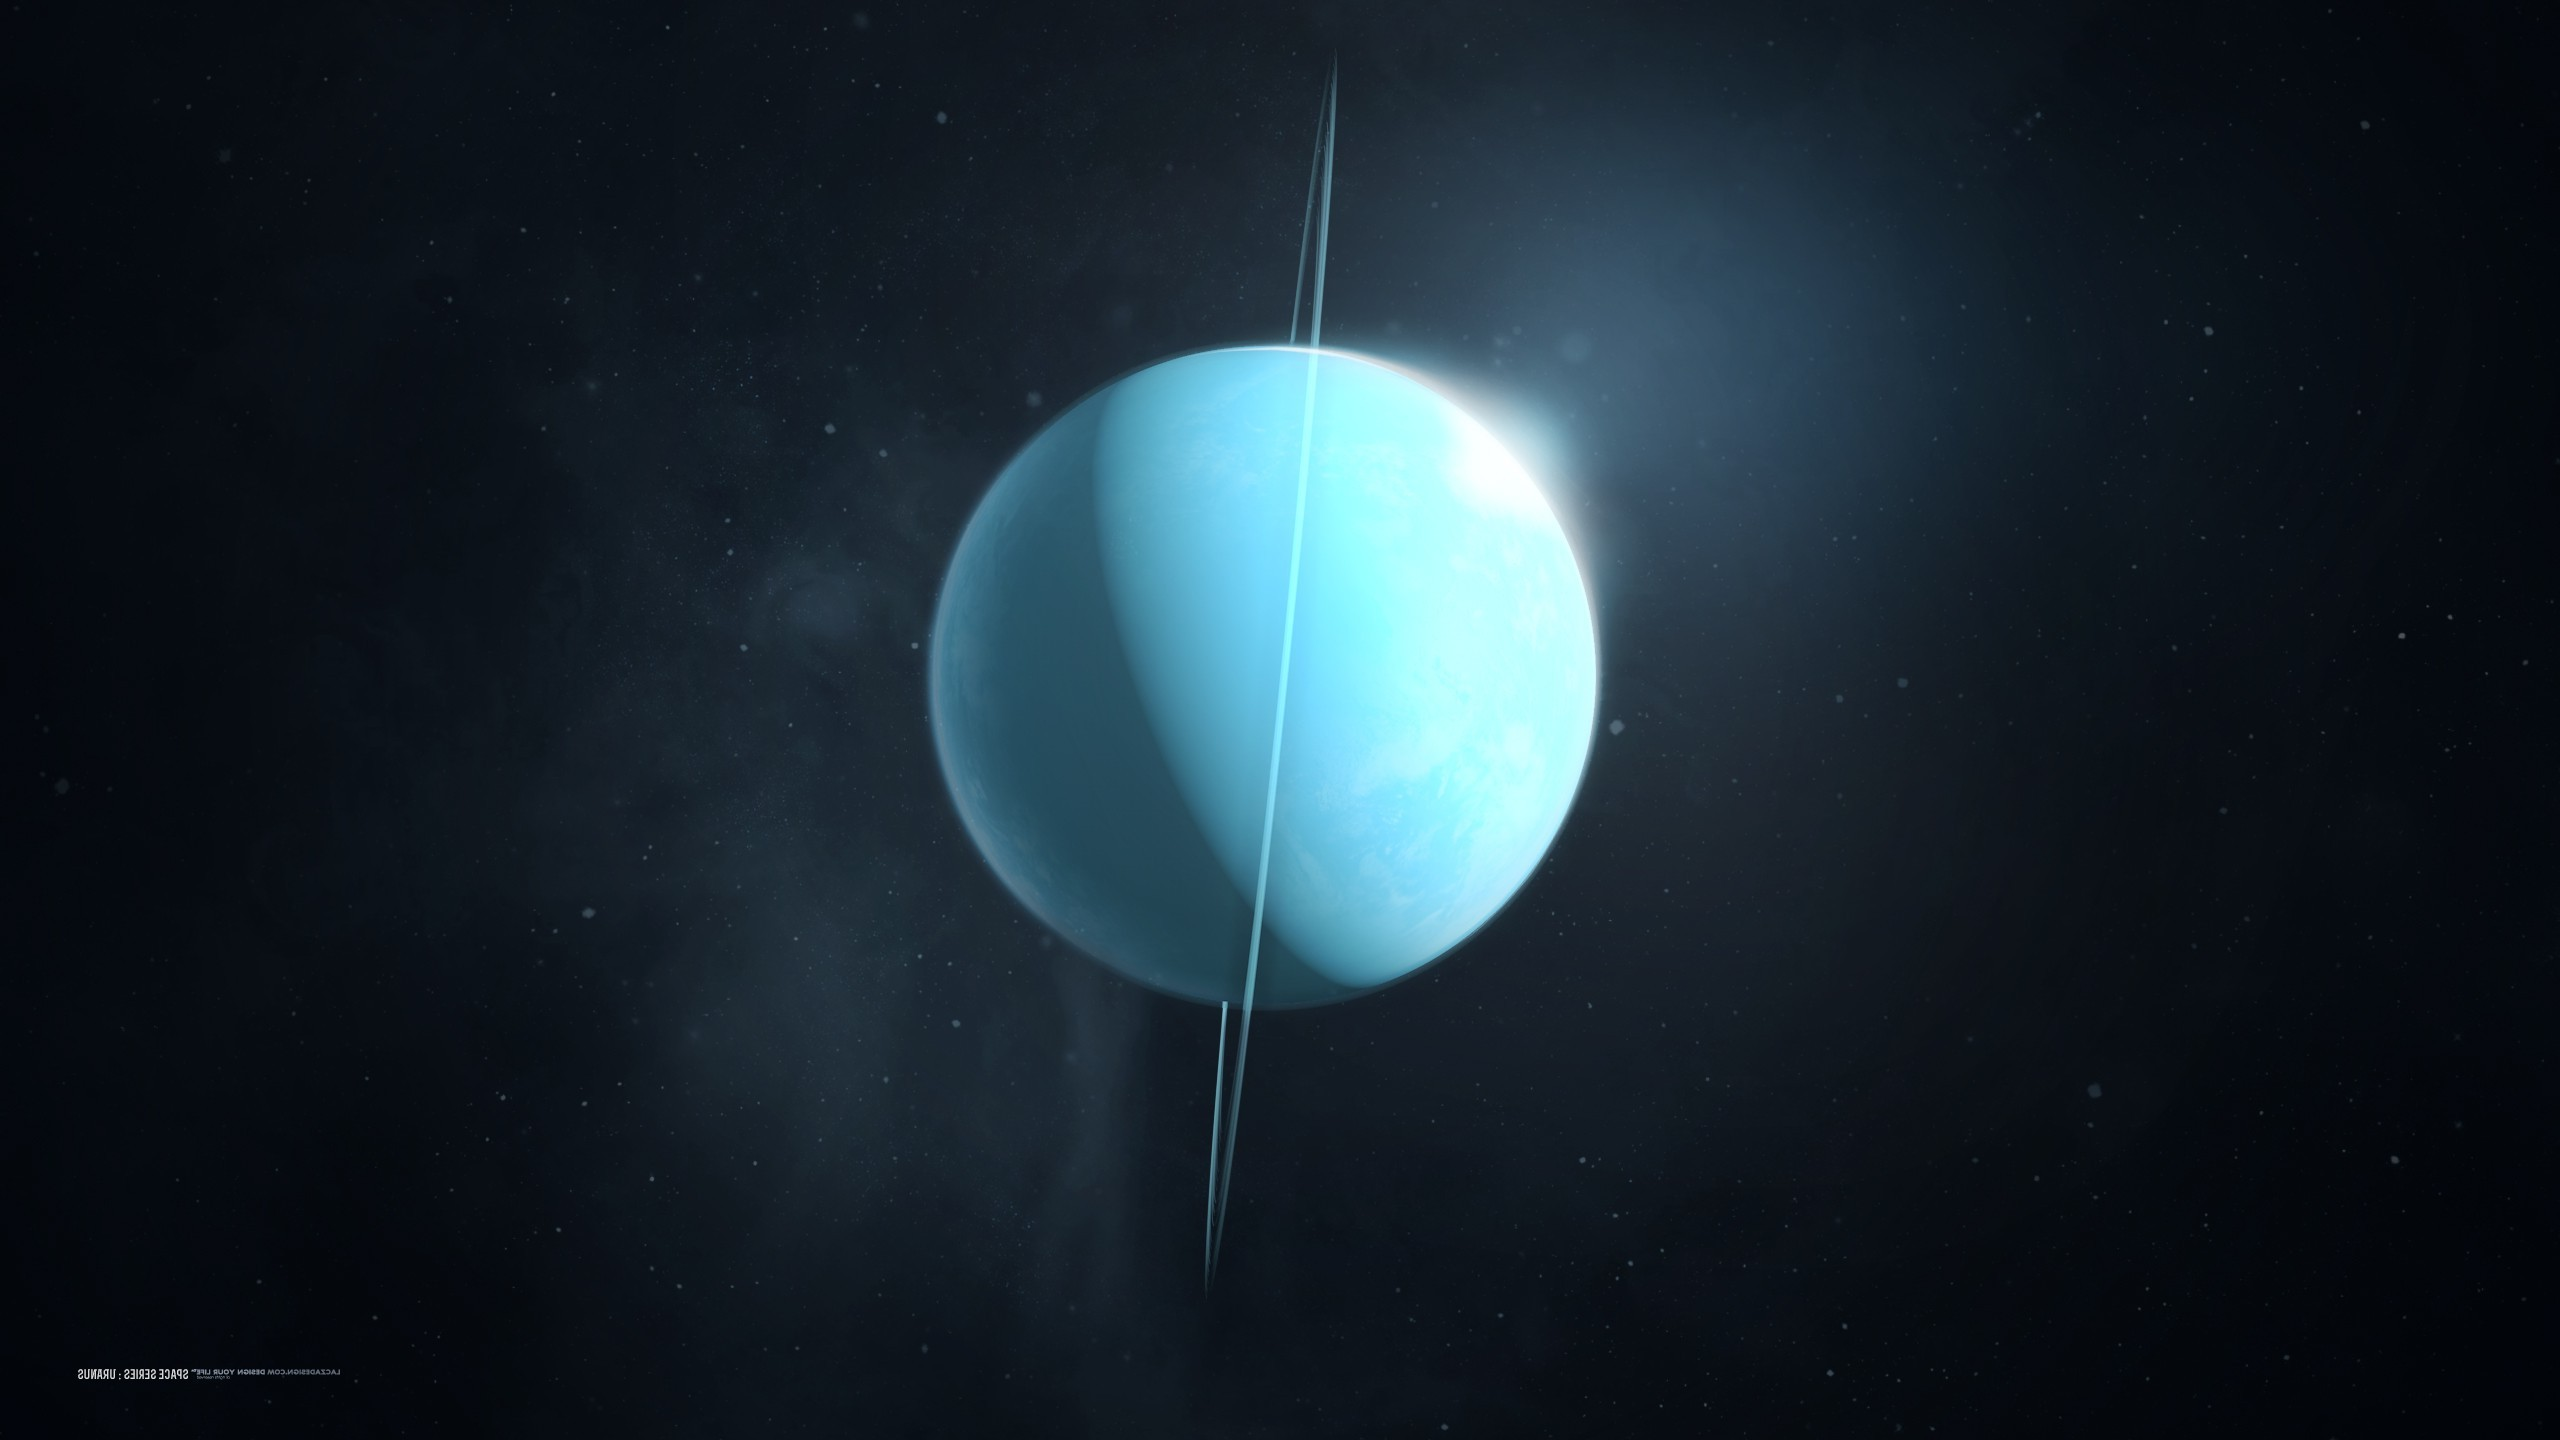 Animal Planet Wallpaper Lacza Space Planet Uranus Wallpapers Hd Desktop And